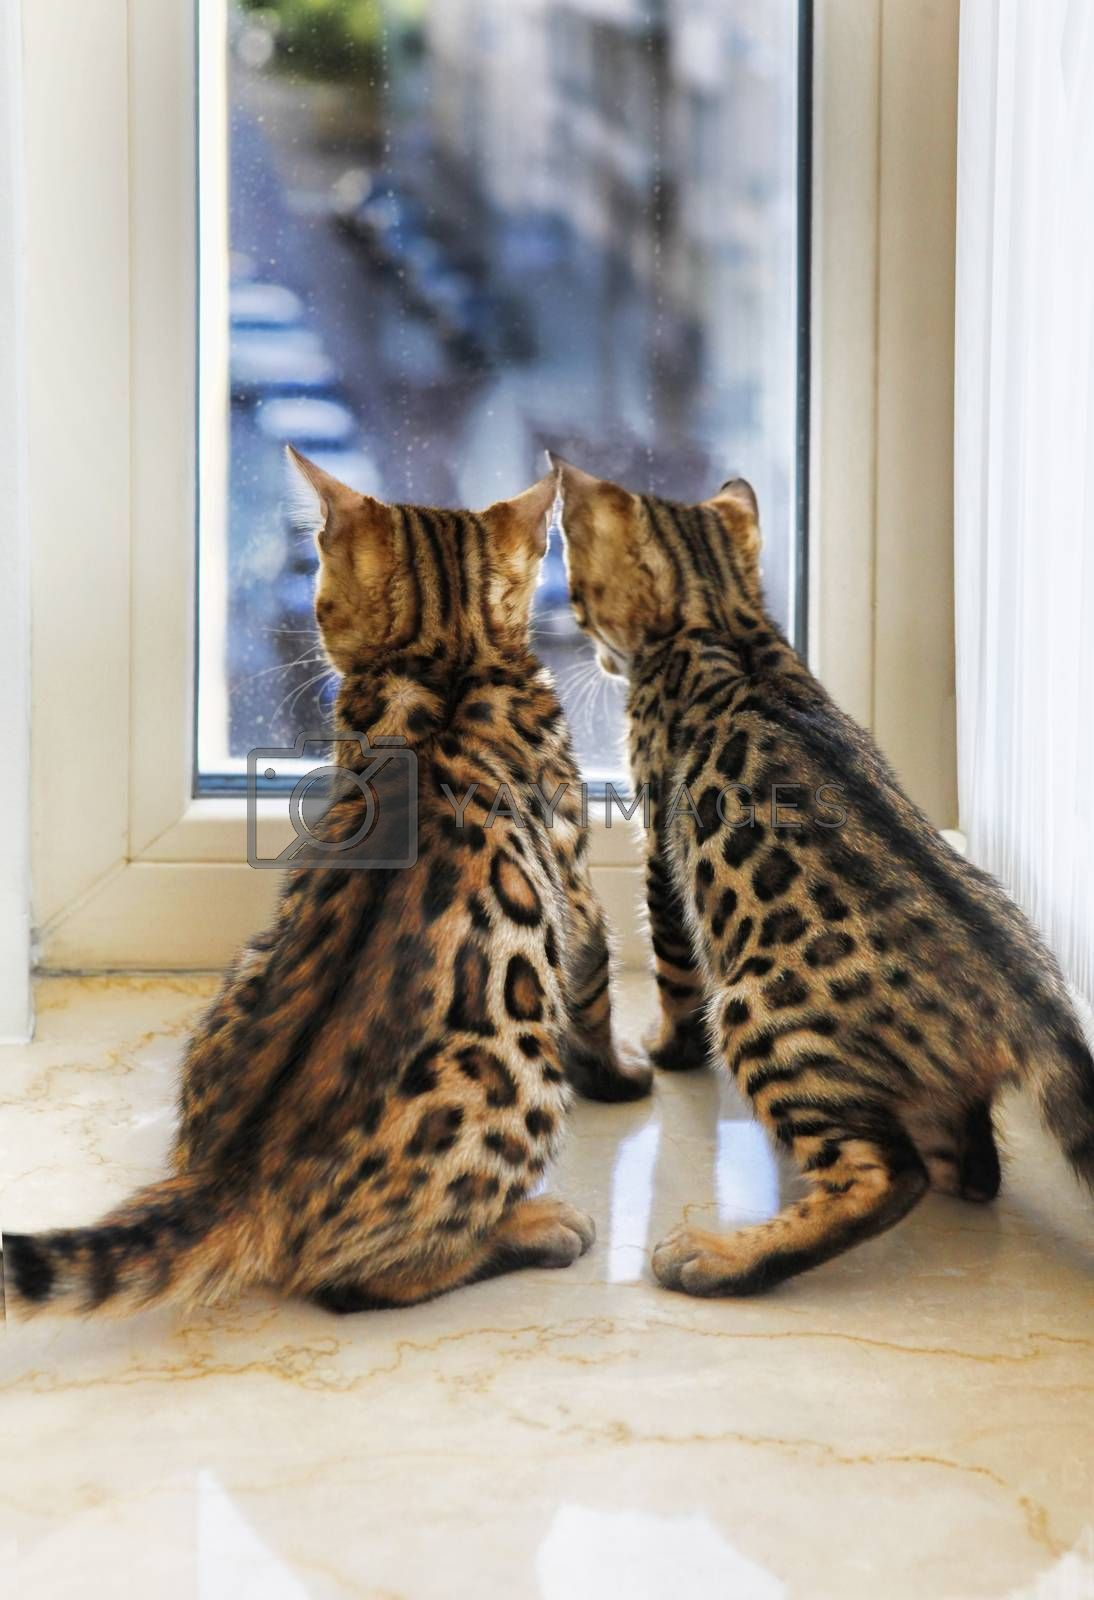 Little Bengal kittens are looking out the window